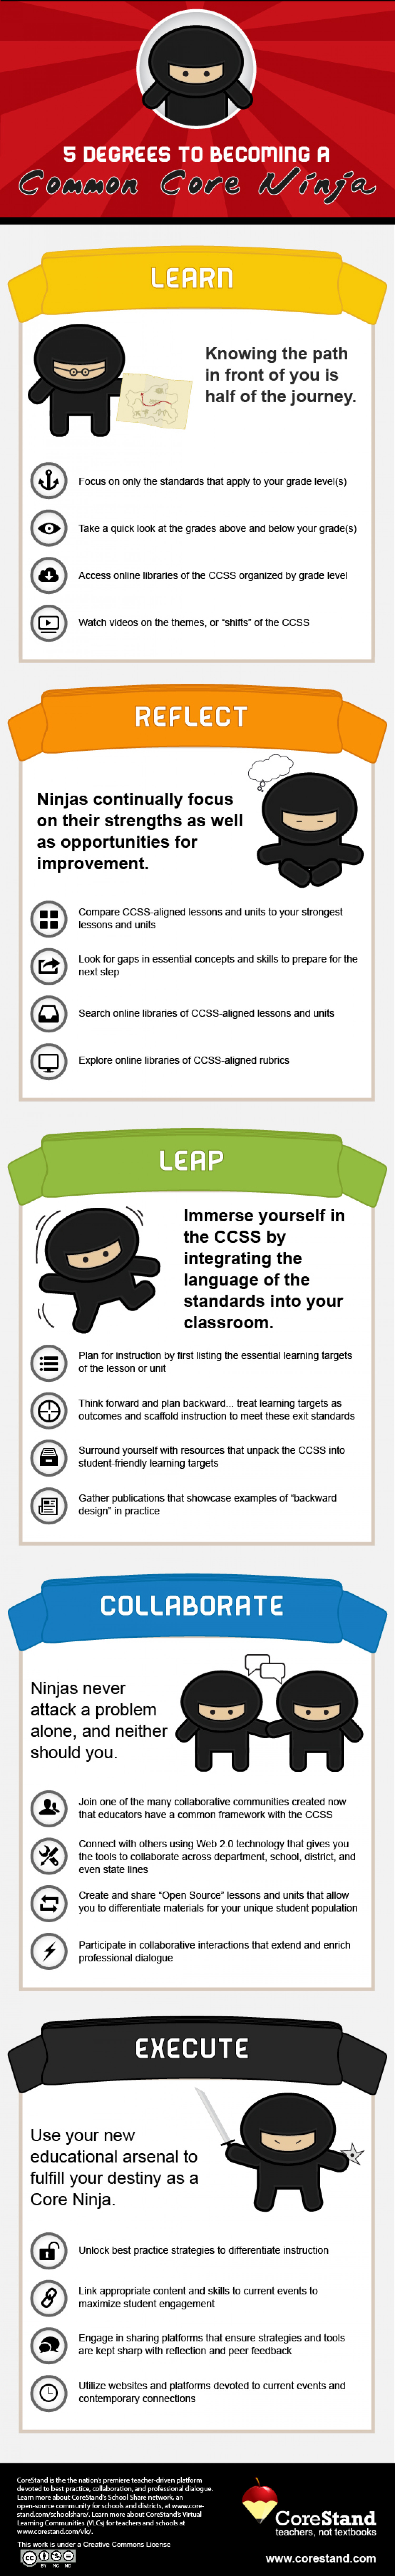 5 Degrees to Becoming a Common Core Ninja [INFOGRAPHIC] Infographic